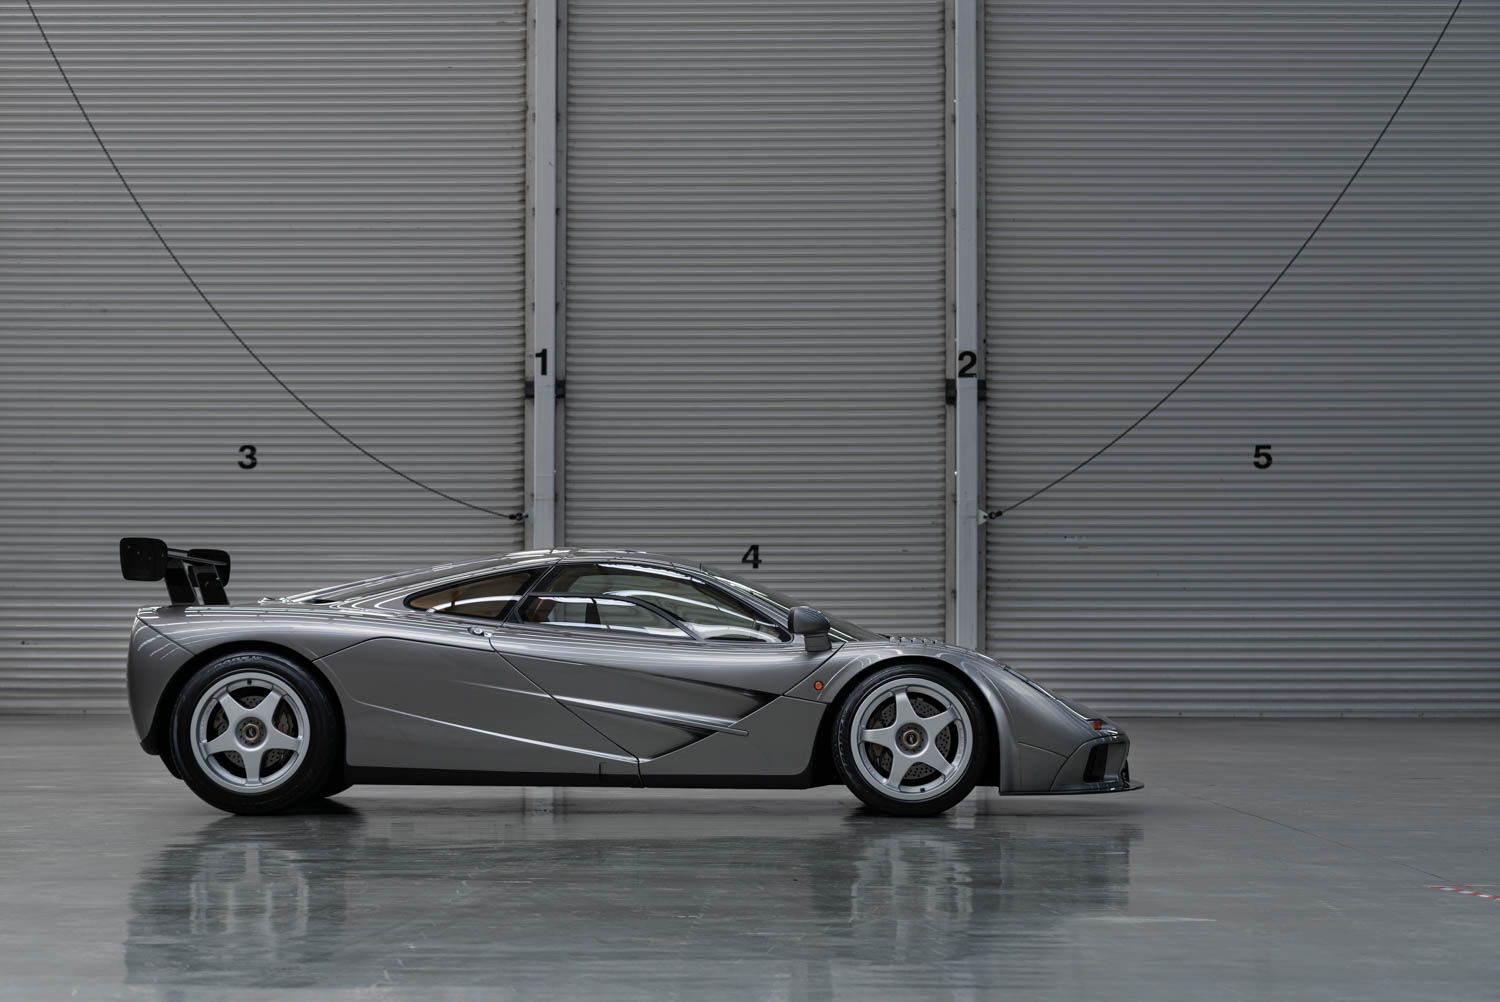 1994 McLaren F1 'LM-Specification' profile